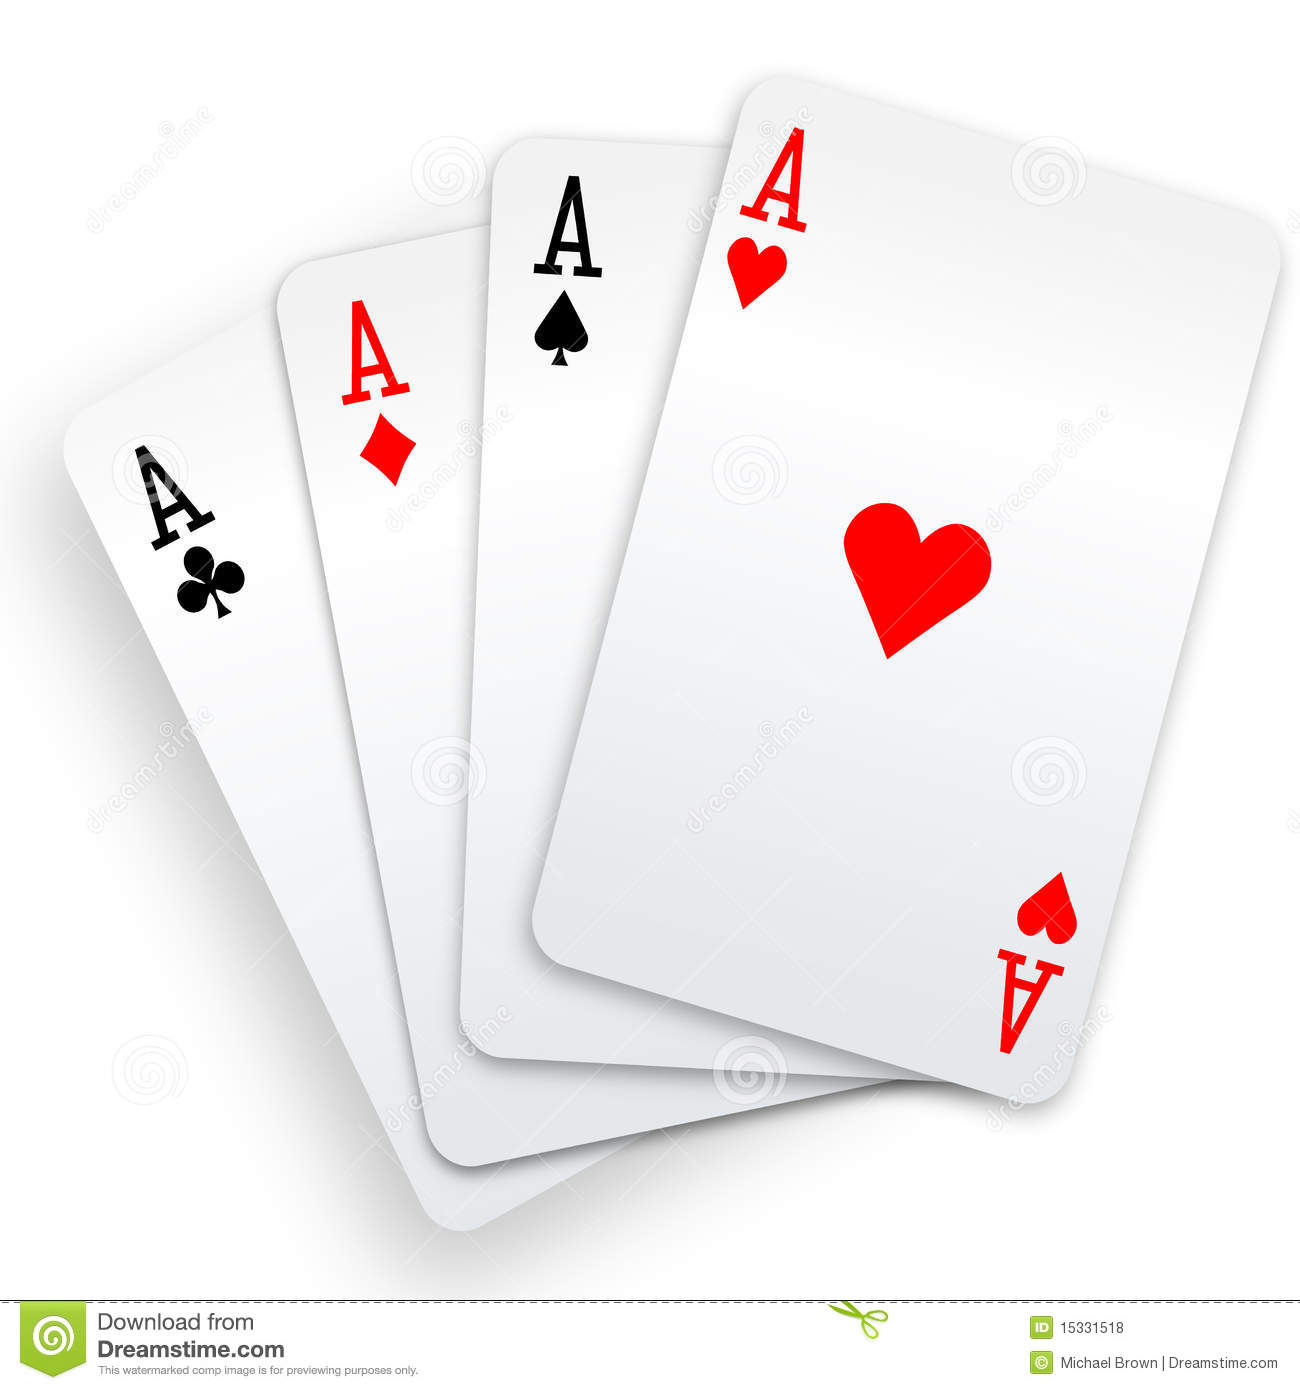 4 aces in poker